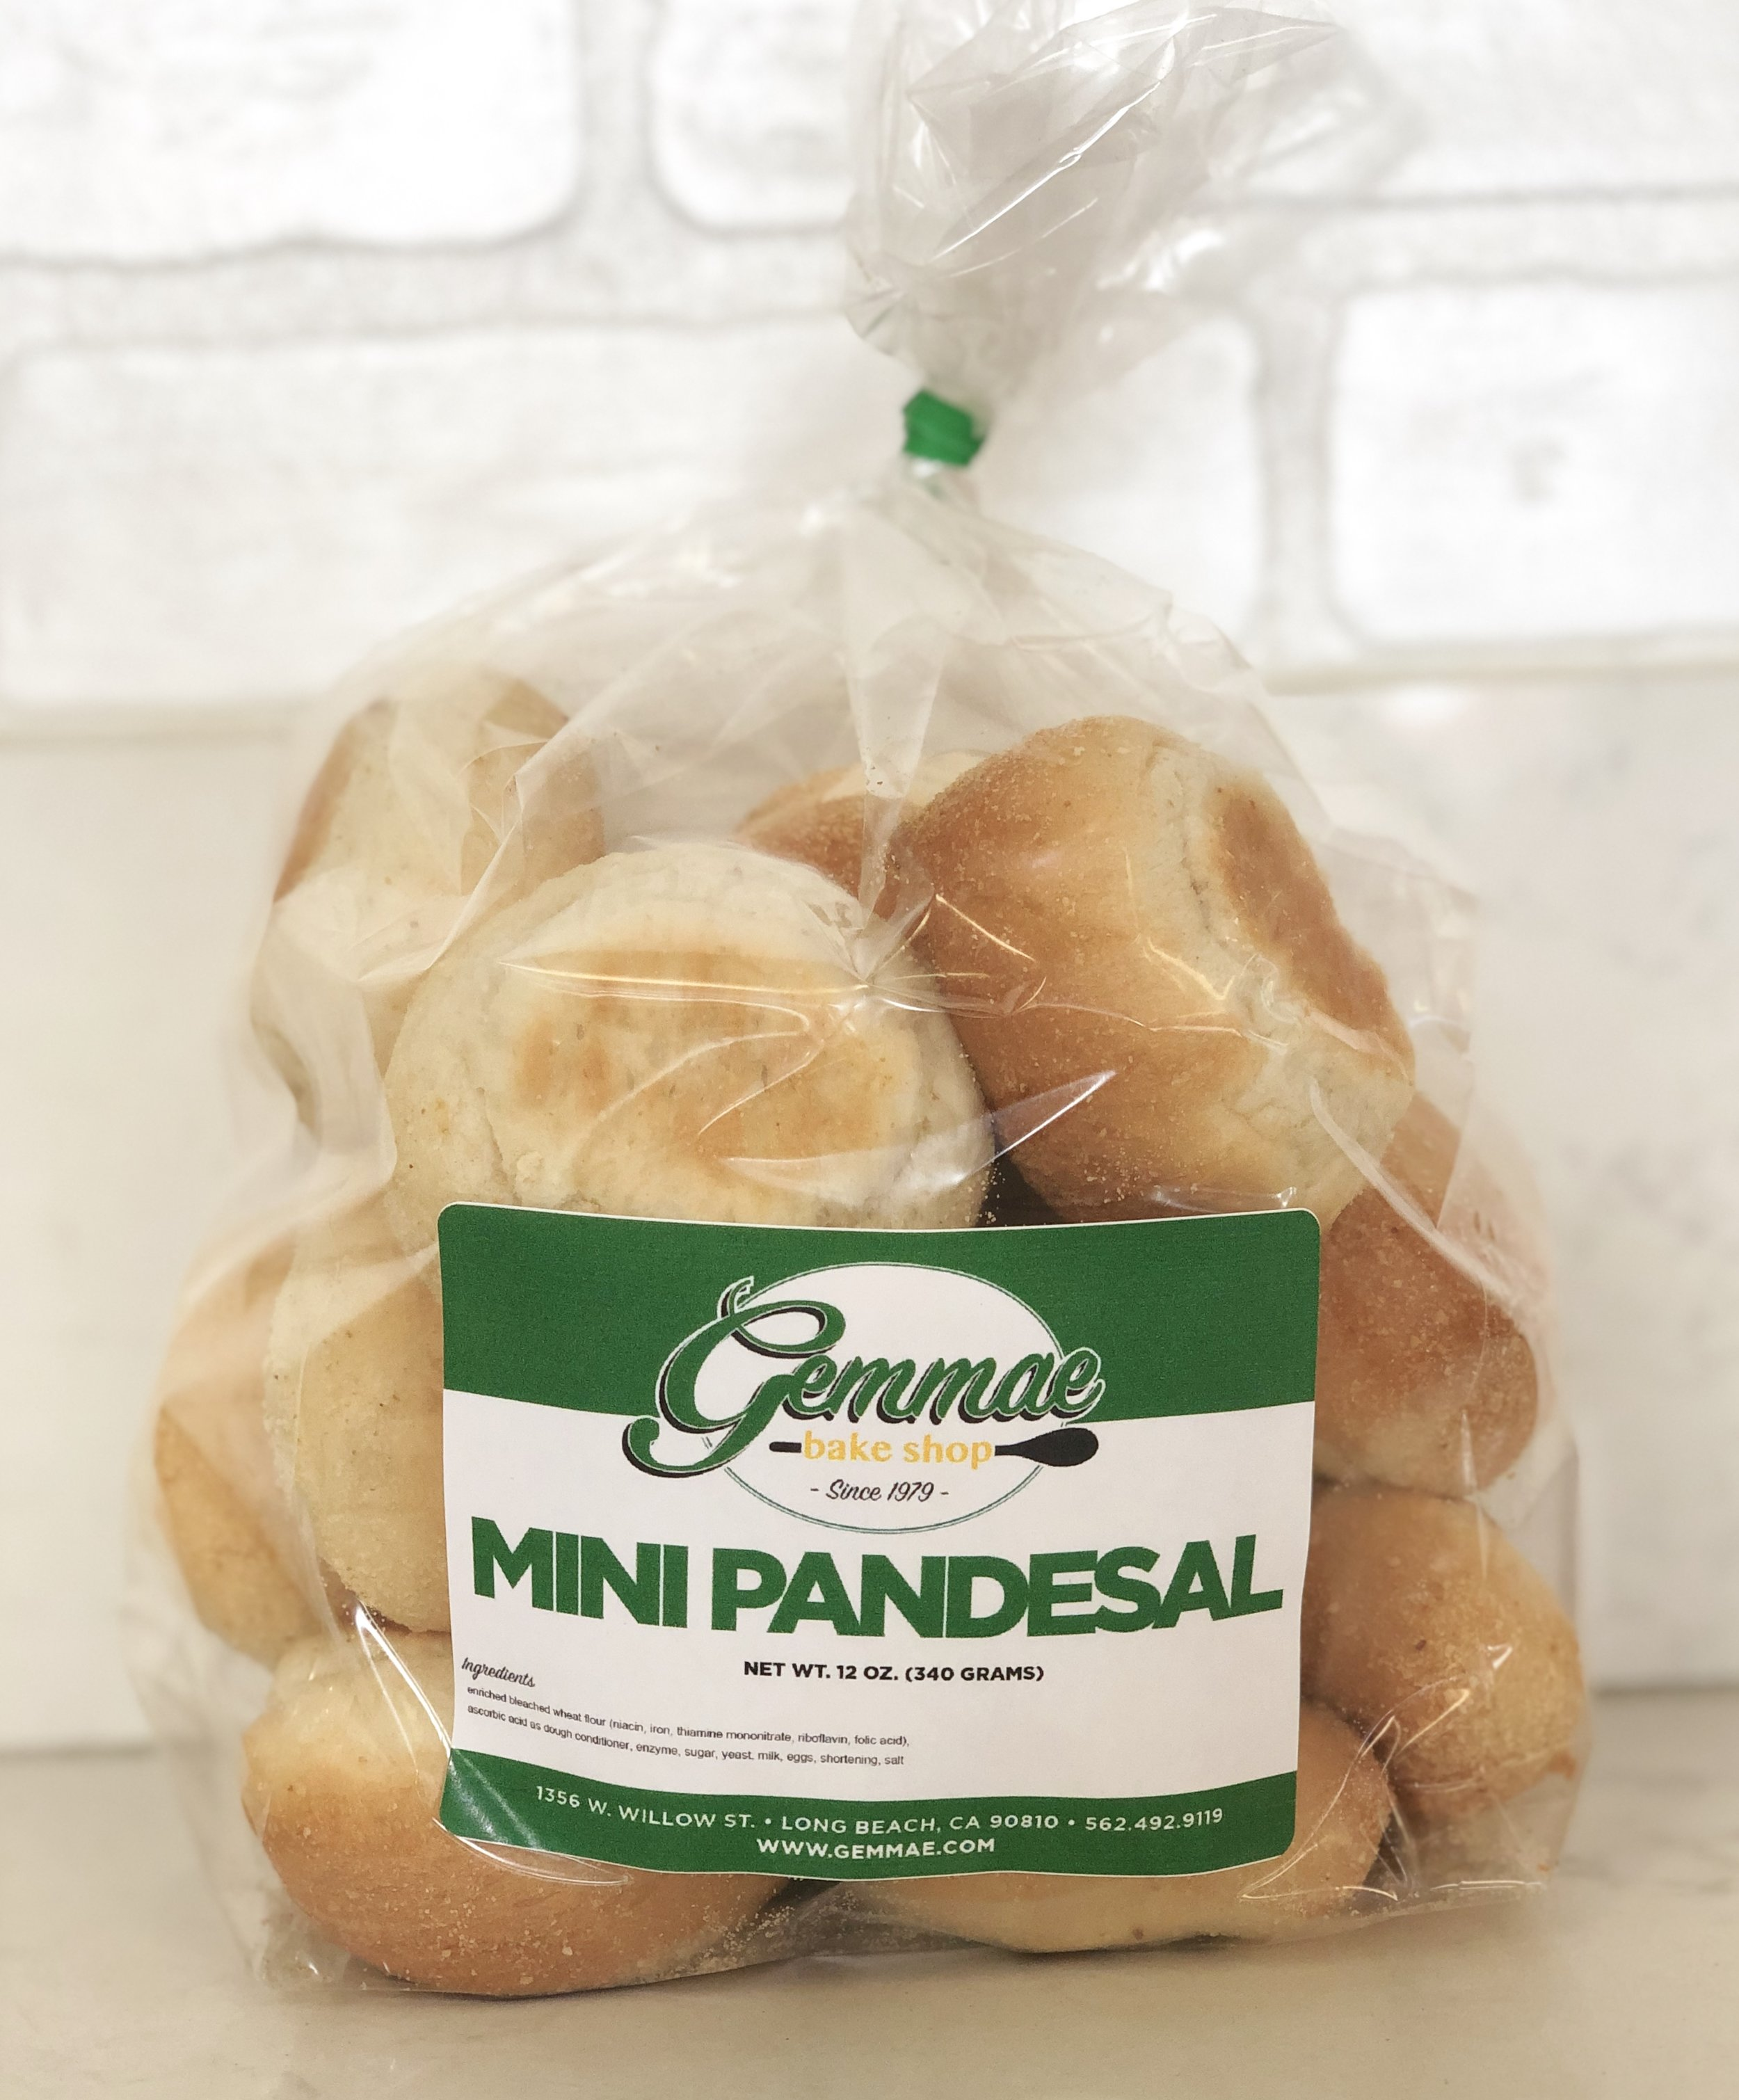 MINI PAN DE SAL   Bite-sized versions of our Filipino bread bun. Soft, fluffy, and baked every morning to ensure freshness. Each bag contains 15 bread buns. Best when toasted.